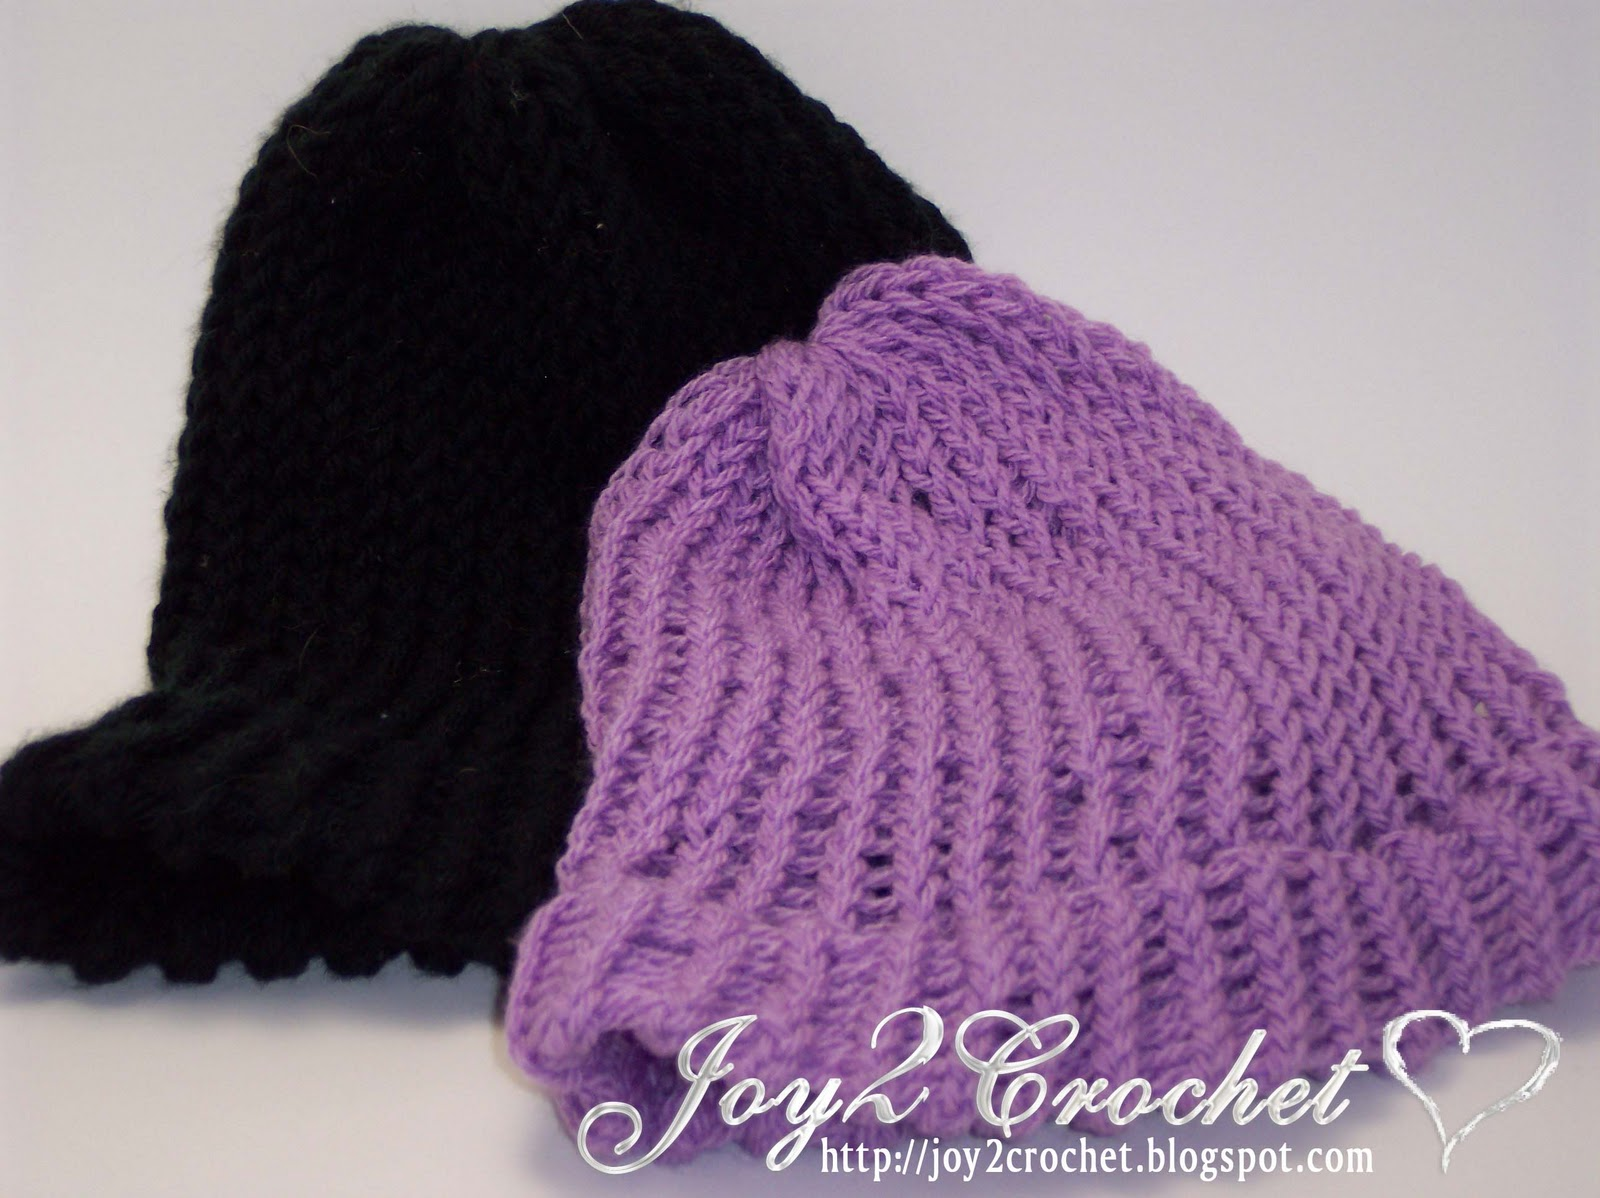 Joy 2 Crochet: Basic Knitting Loom Hats